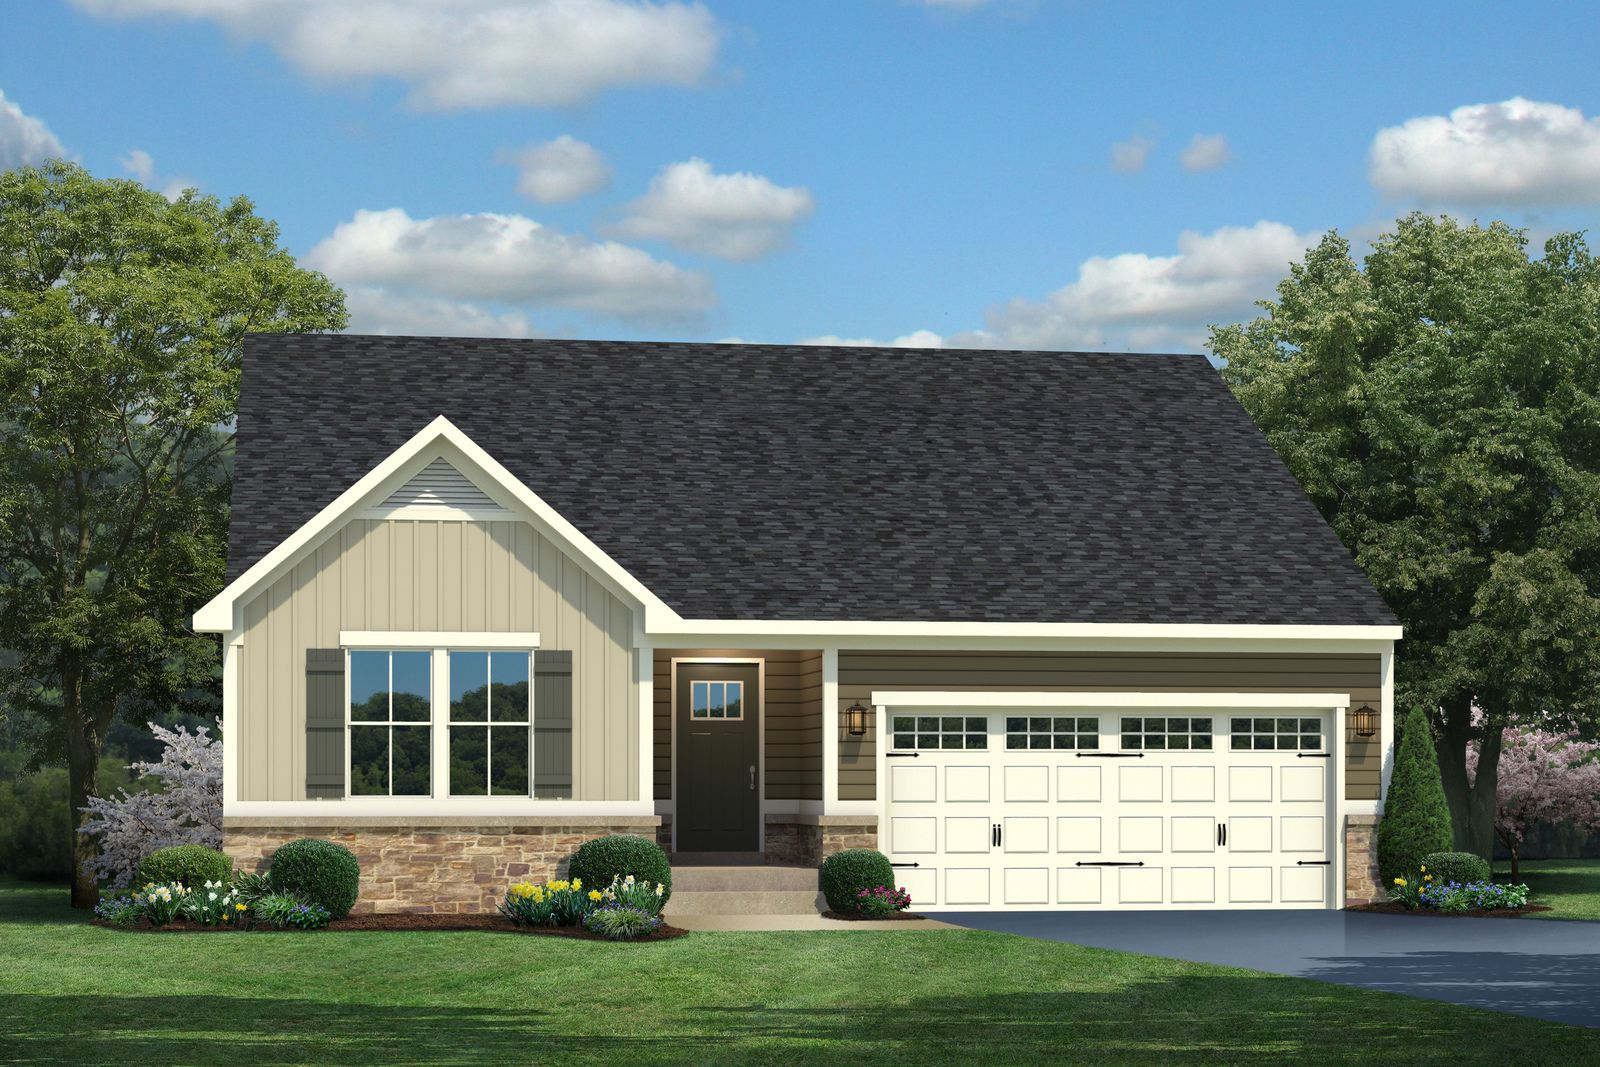 'Fairway Glenn' by Ryan Homes-CLE in Cleveland